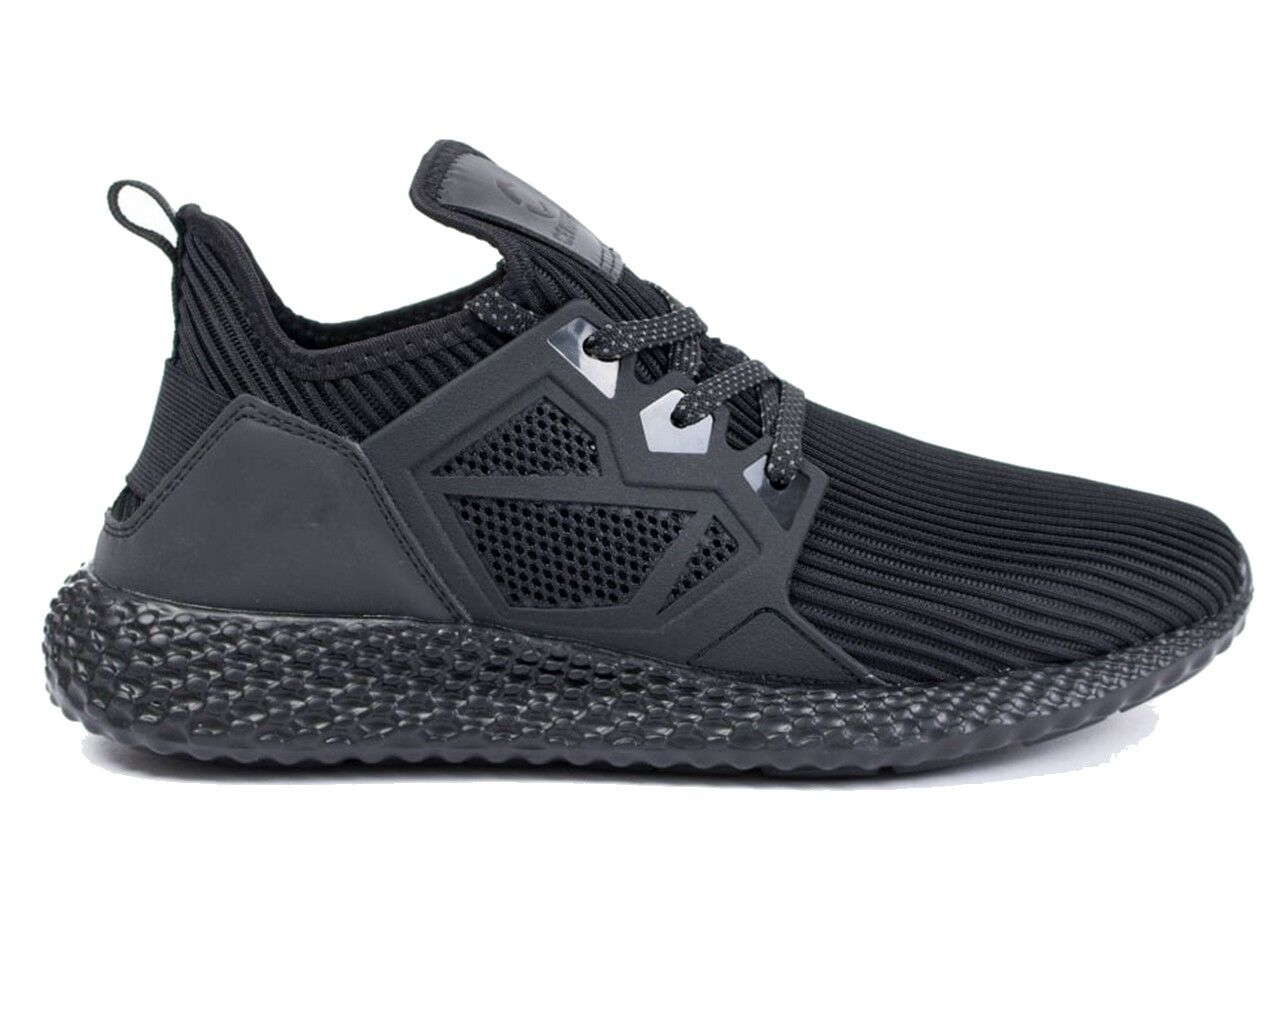 Certified Trainers London CT1000 Mesh Mens Trainers Certified Black Gym Shoes 38870f